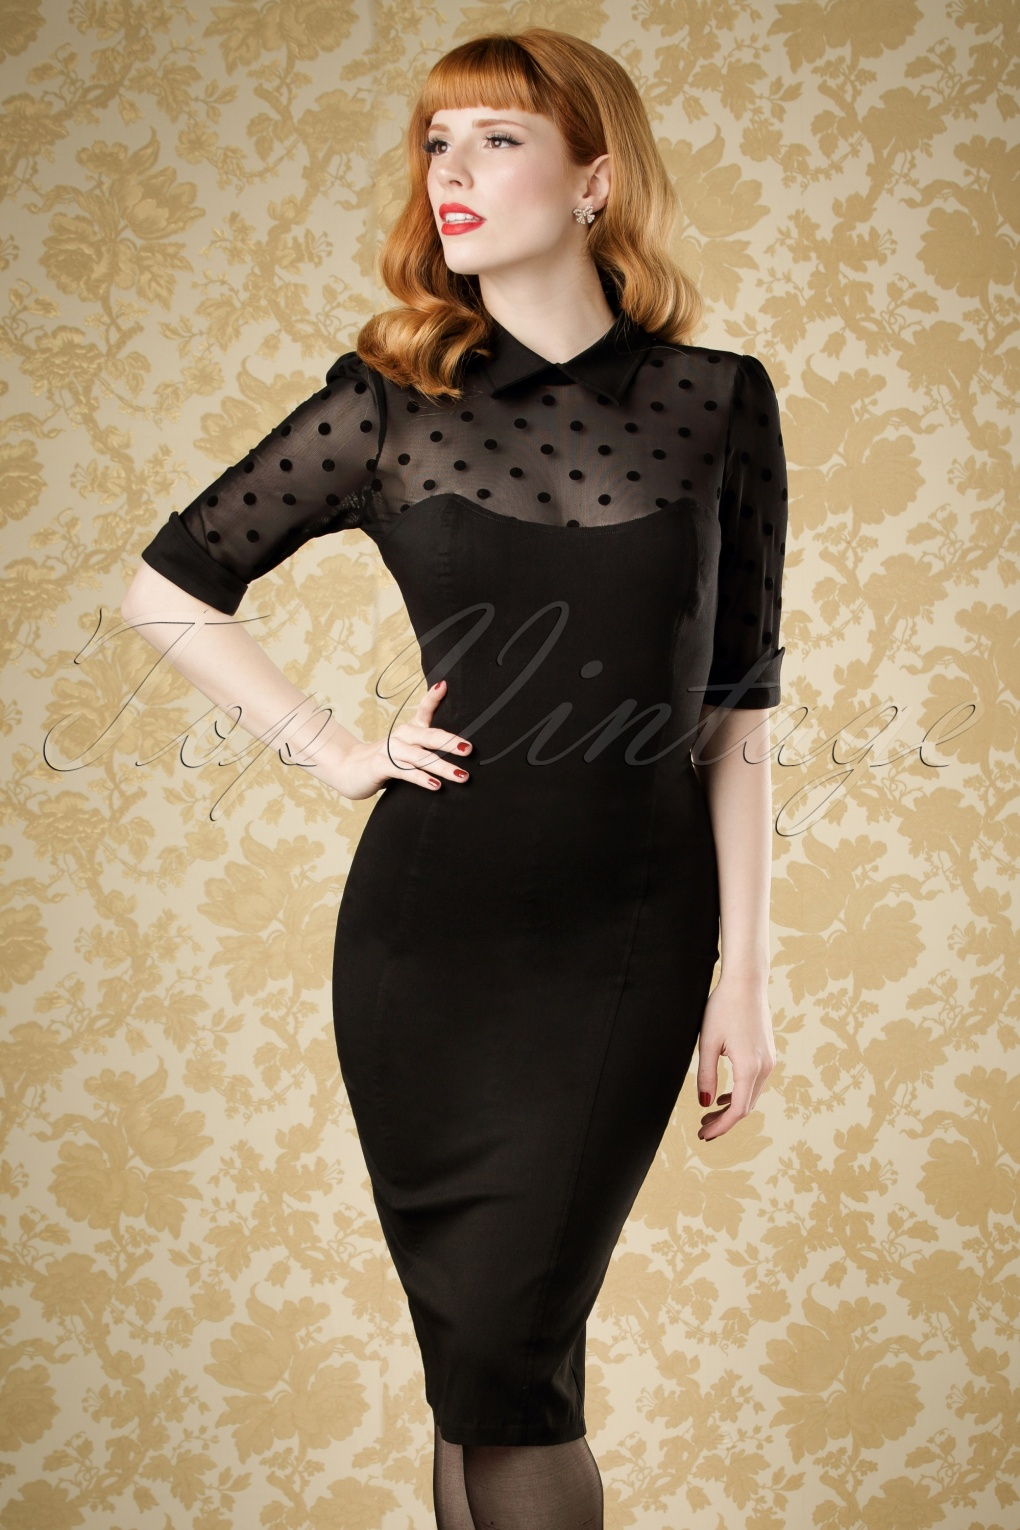 1950s Dresses, 50s Dresses | 1950s Style Dresses 50s Wednesday Polkadot Pencil Dress in Black £42.72 AT vintagedancer.com